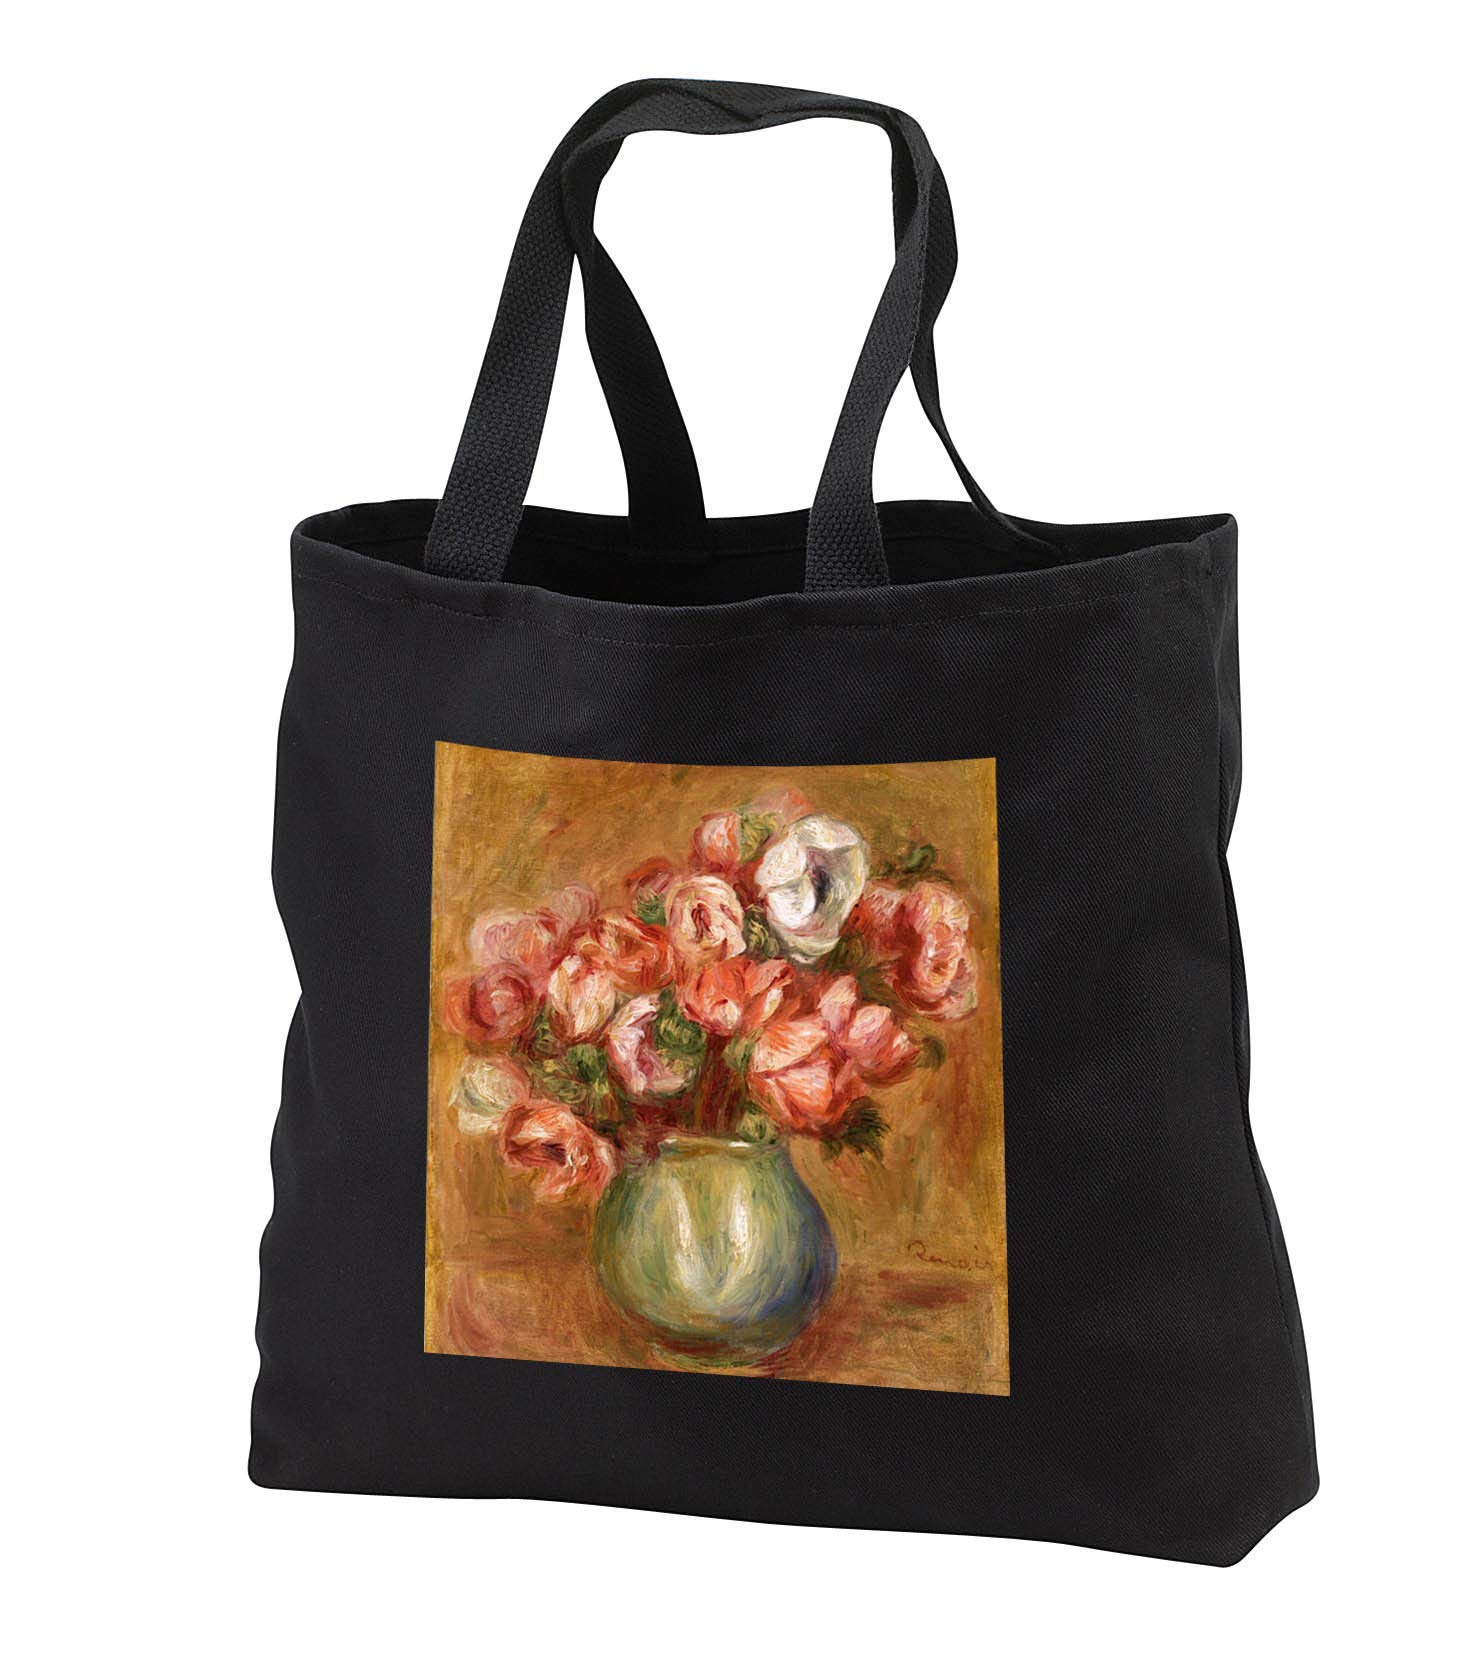 Cassie Peters Florals - Anemones in a Vase by Renoir - Tote Bags - Black Tote Bag JUMBO 20w x 15h x 5d (tb_287078_3)